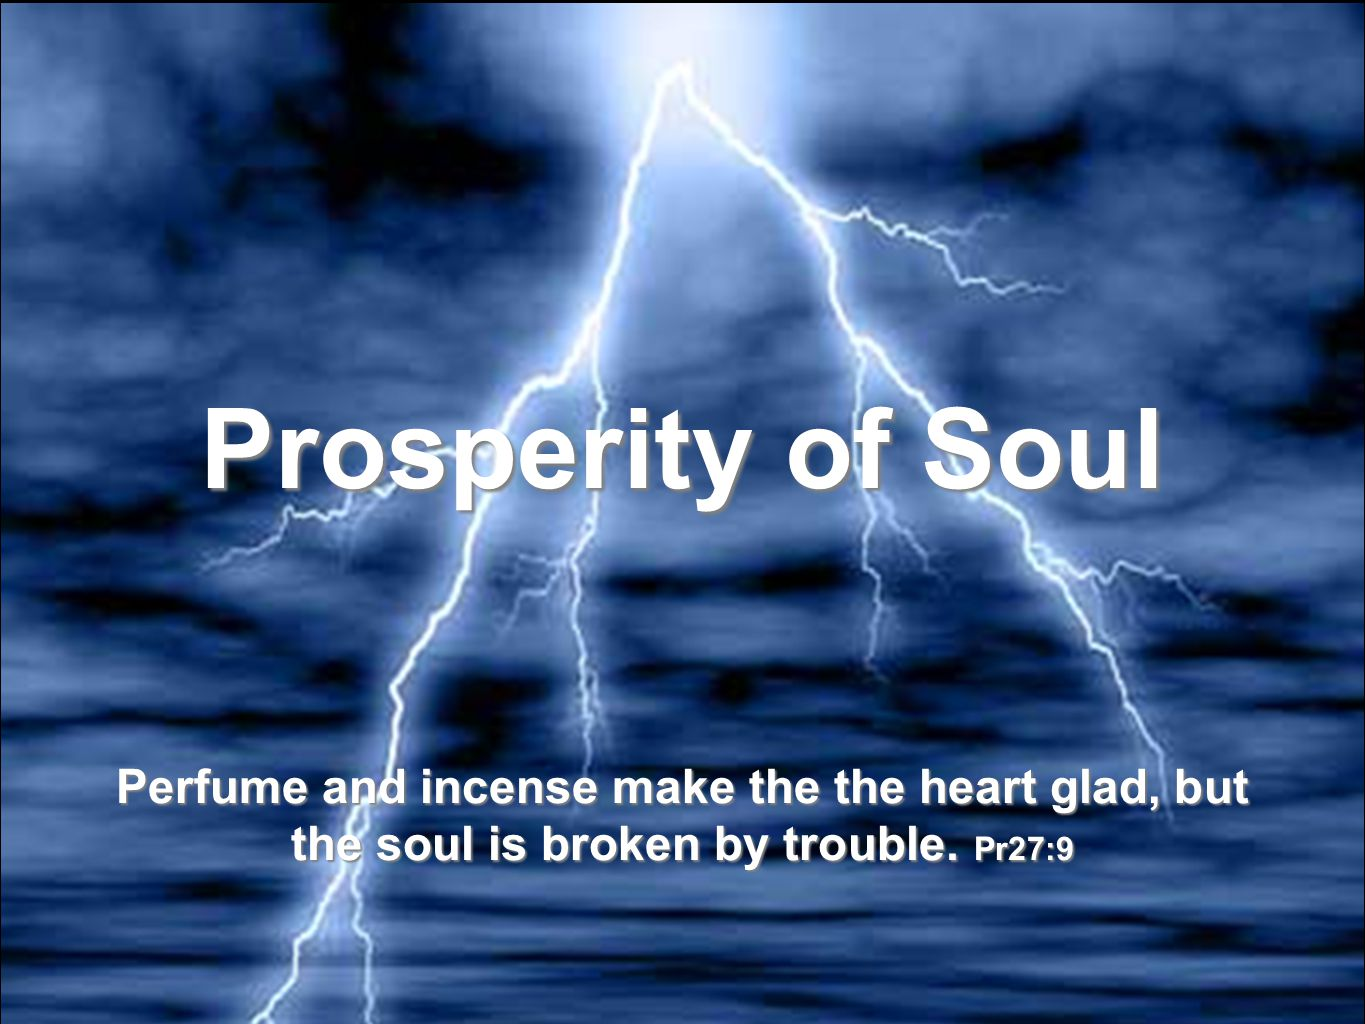 Prosperity of Soul Perfume and incense make the the heart glad, but the soul is broken by trouble.